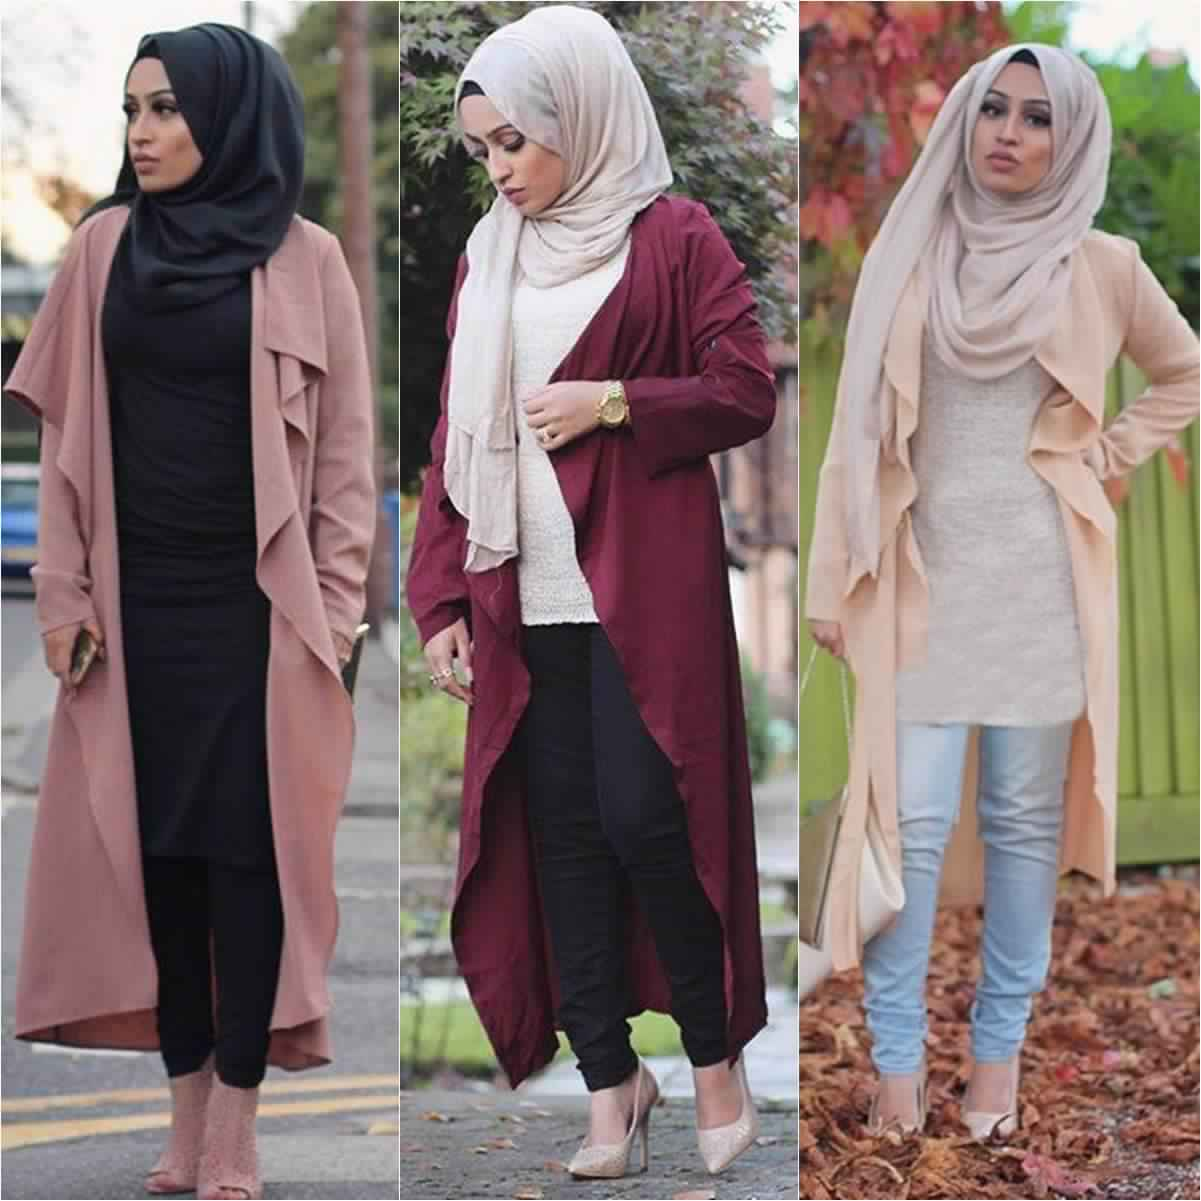 copyright@hijabfashioninspiration.com